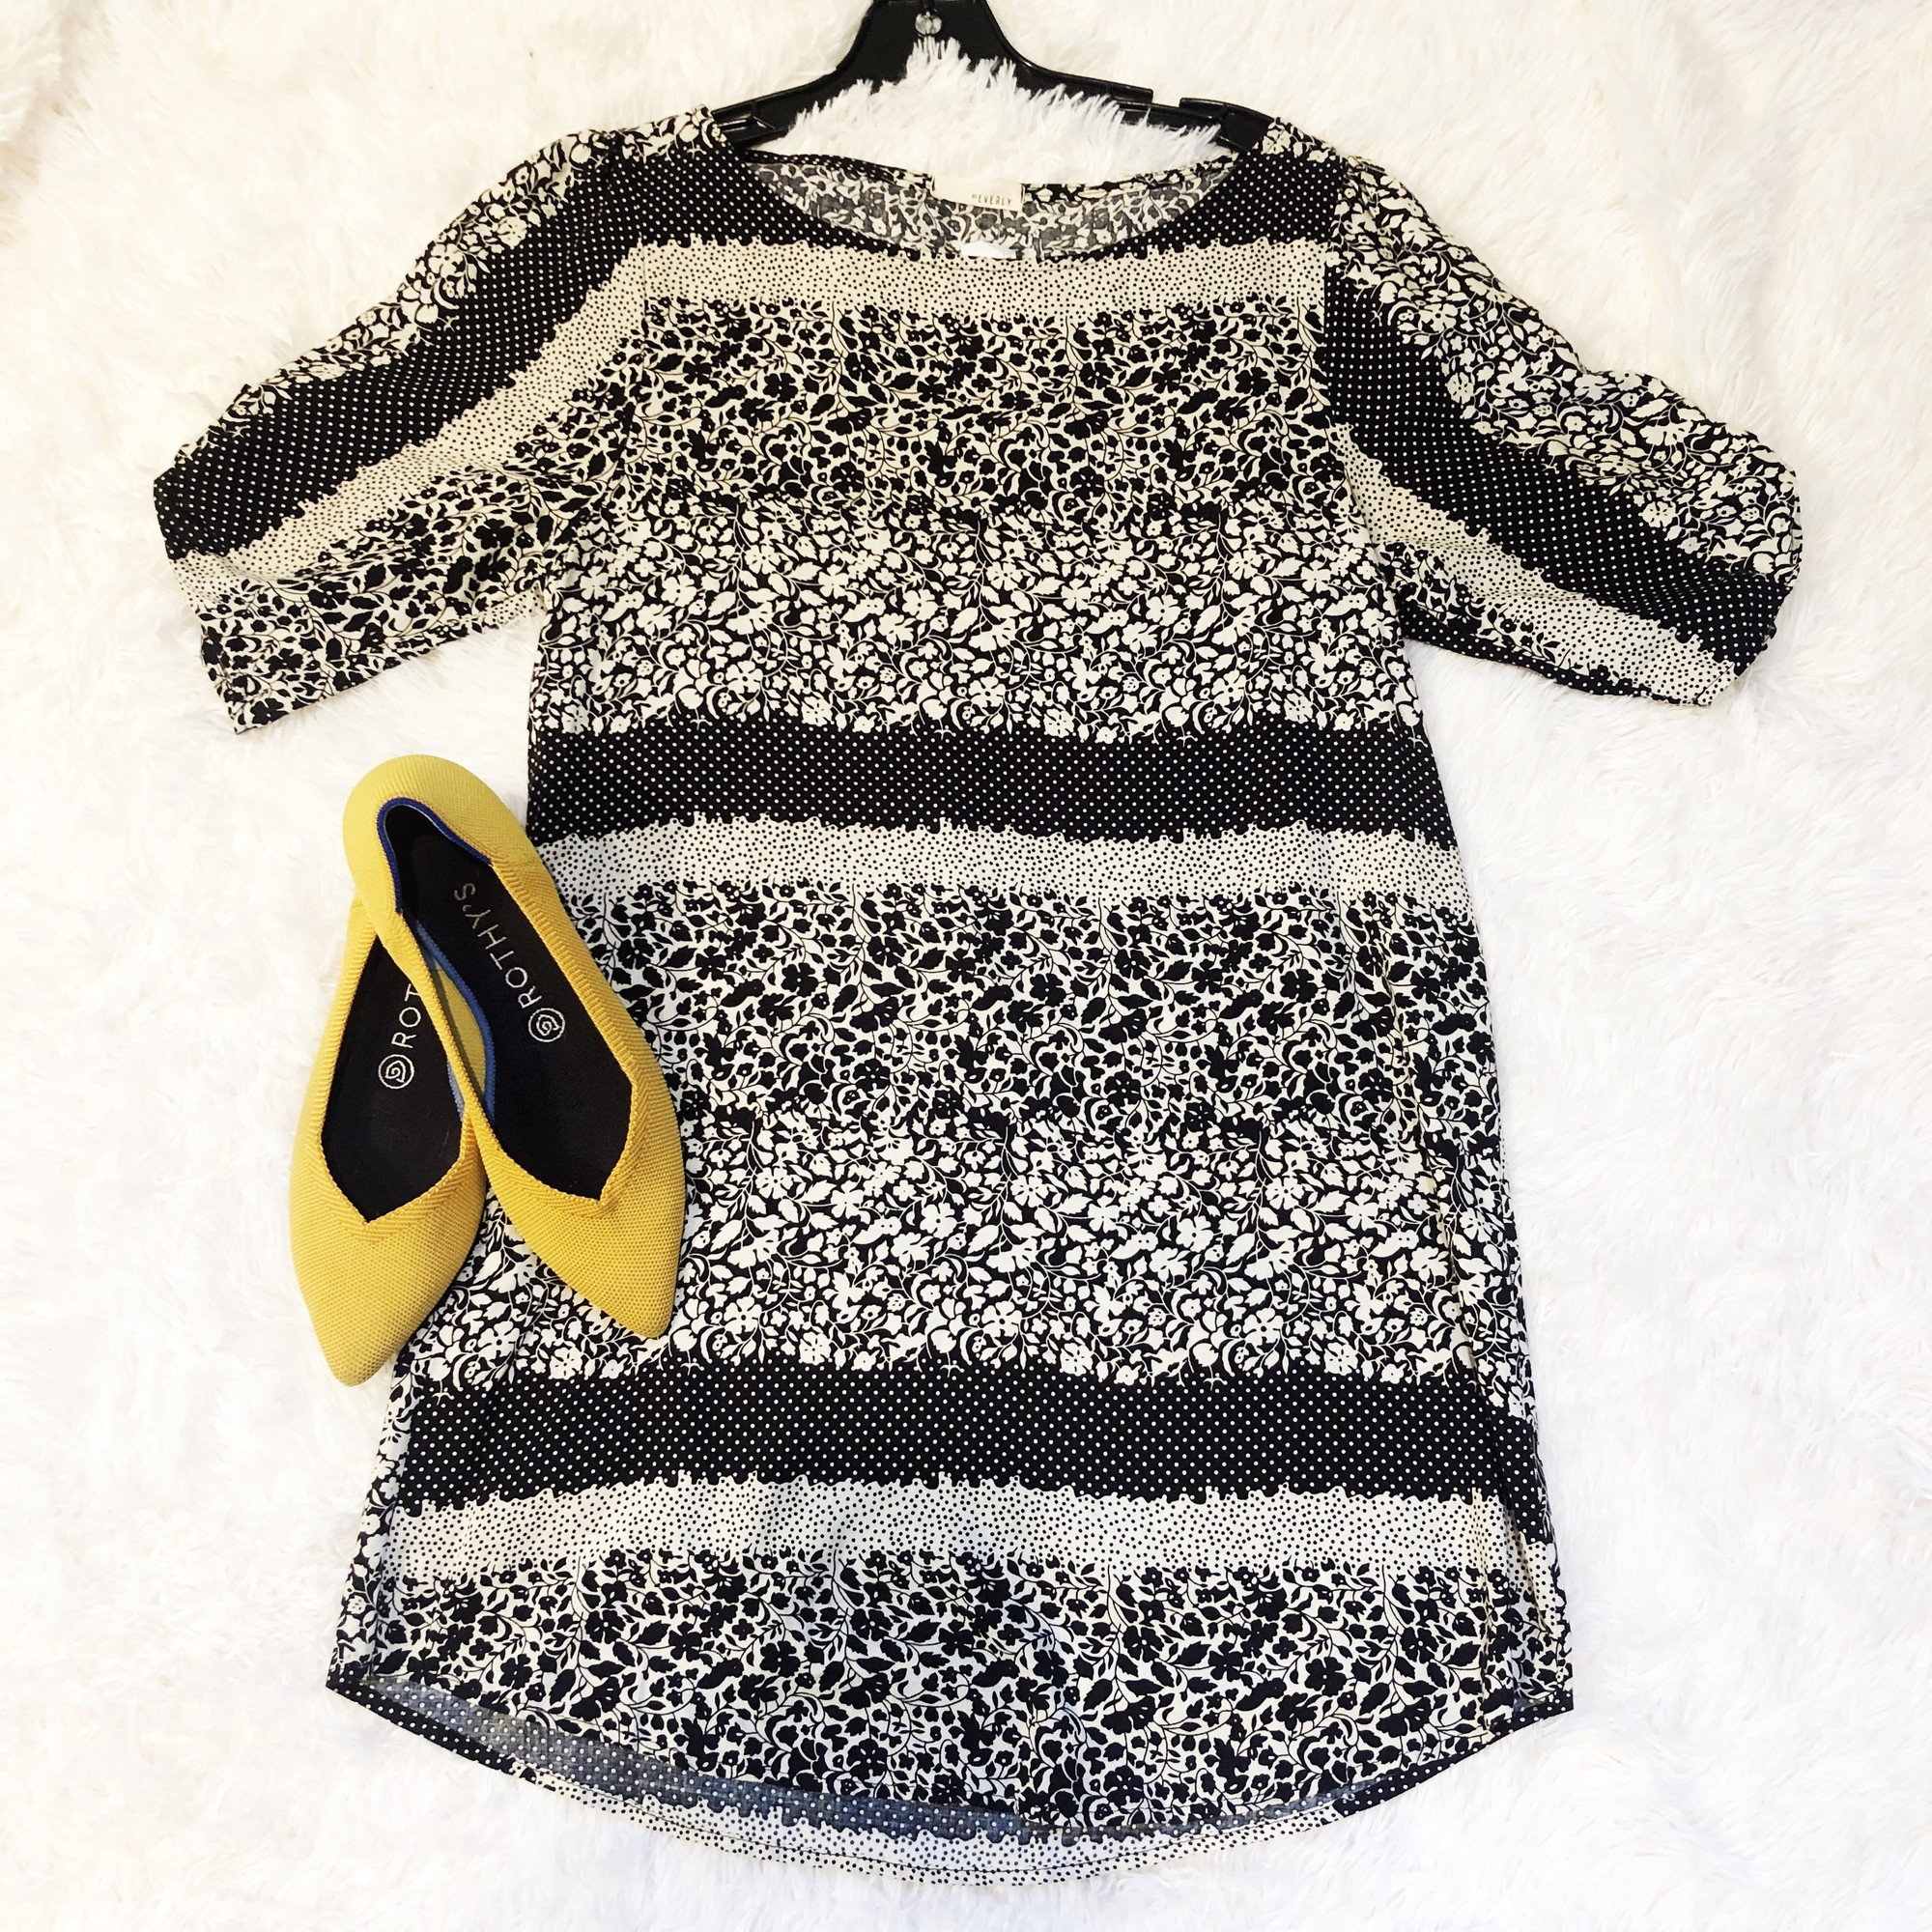 We love the buttons on the sleeve and the fun different black and cream flower patterns